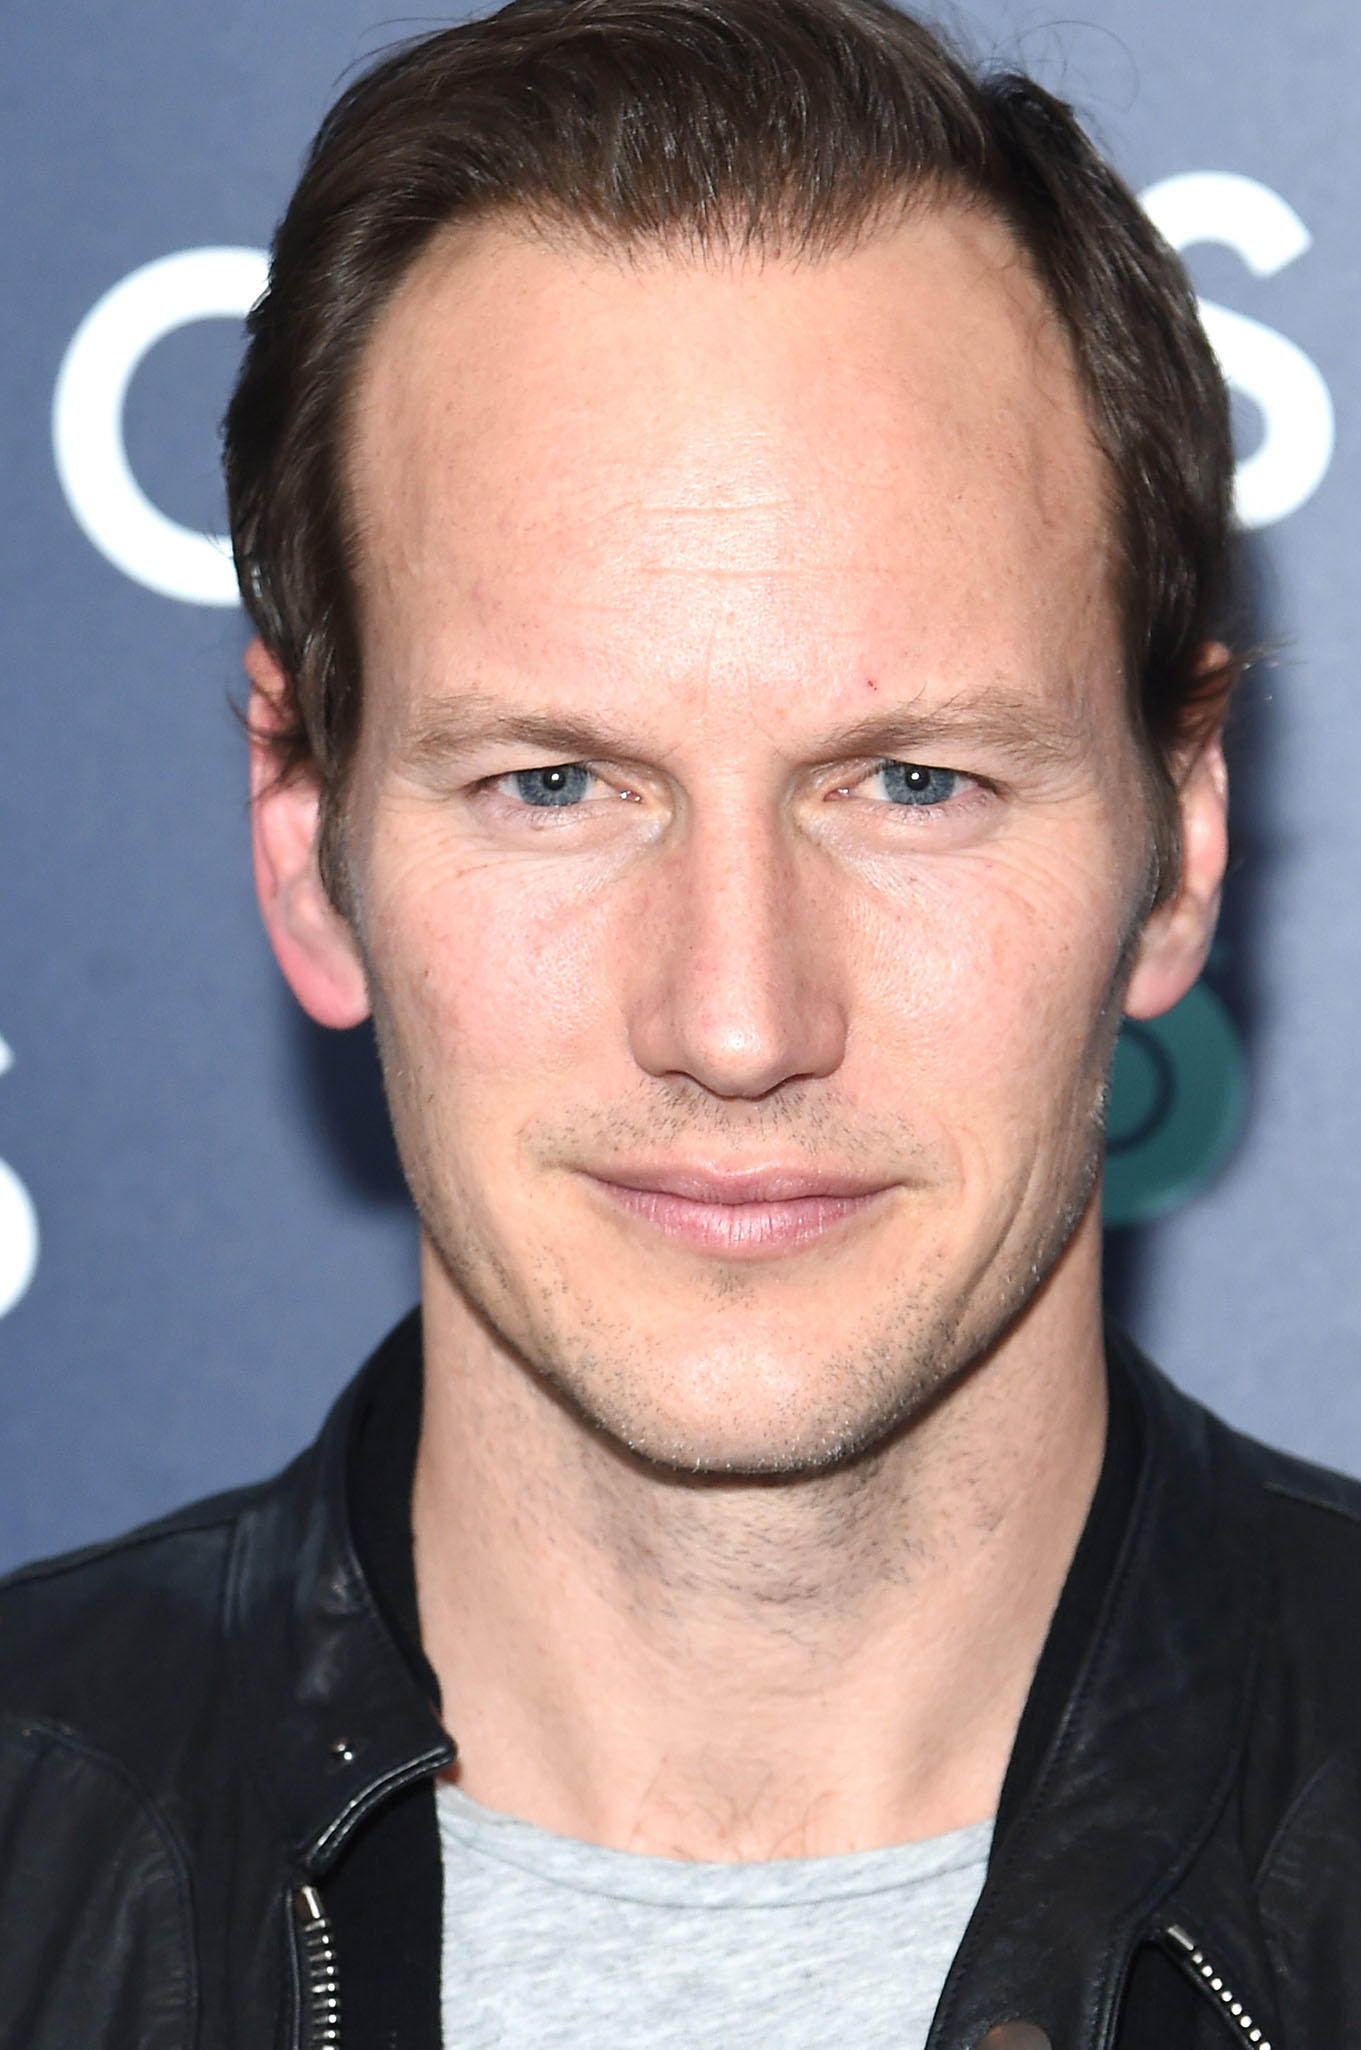 Patrick Wilson at the New York premiere of the sixth season of